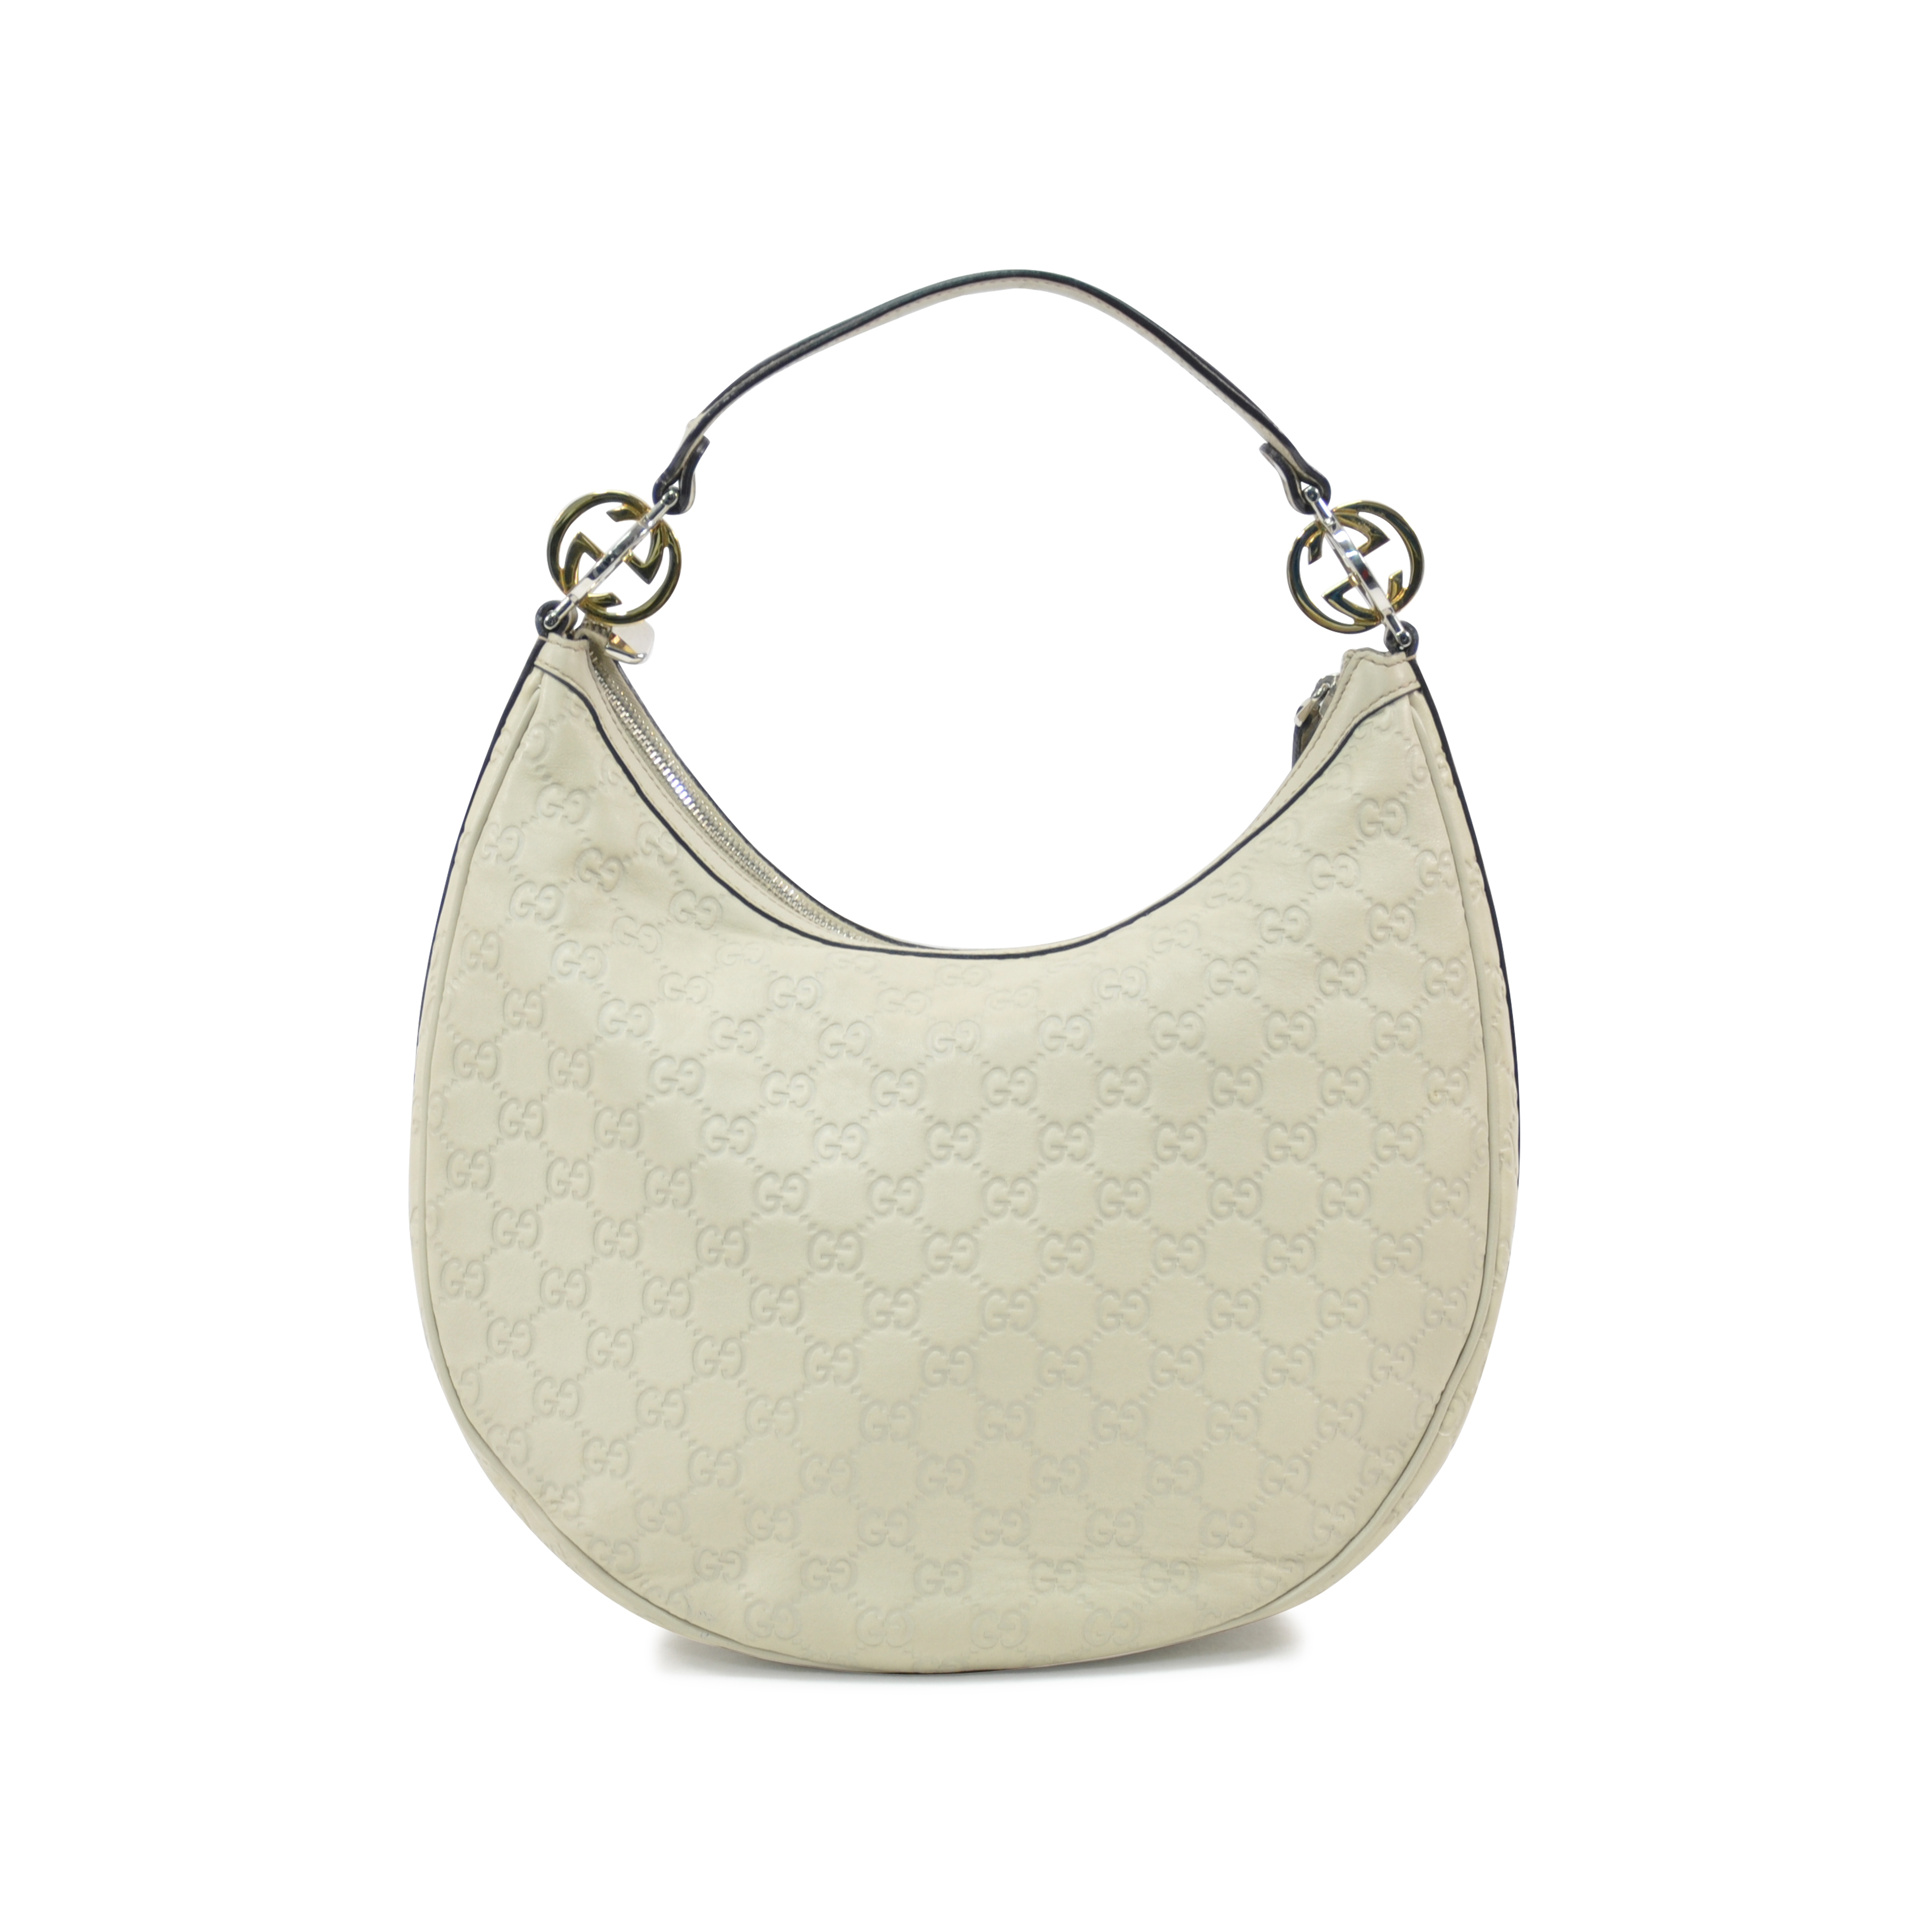 90148b73d4e7 Authentic Second Hand Gucci Guccissima Leather Hobo Bag (PSS-317-00001) |  THE FIFTH COLLECTION